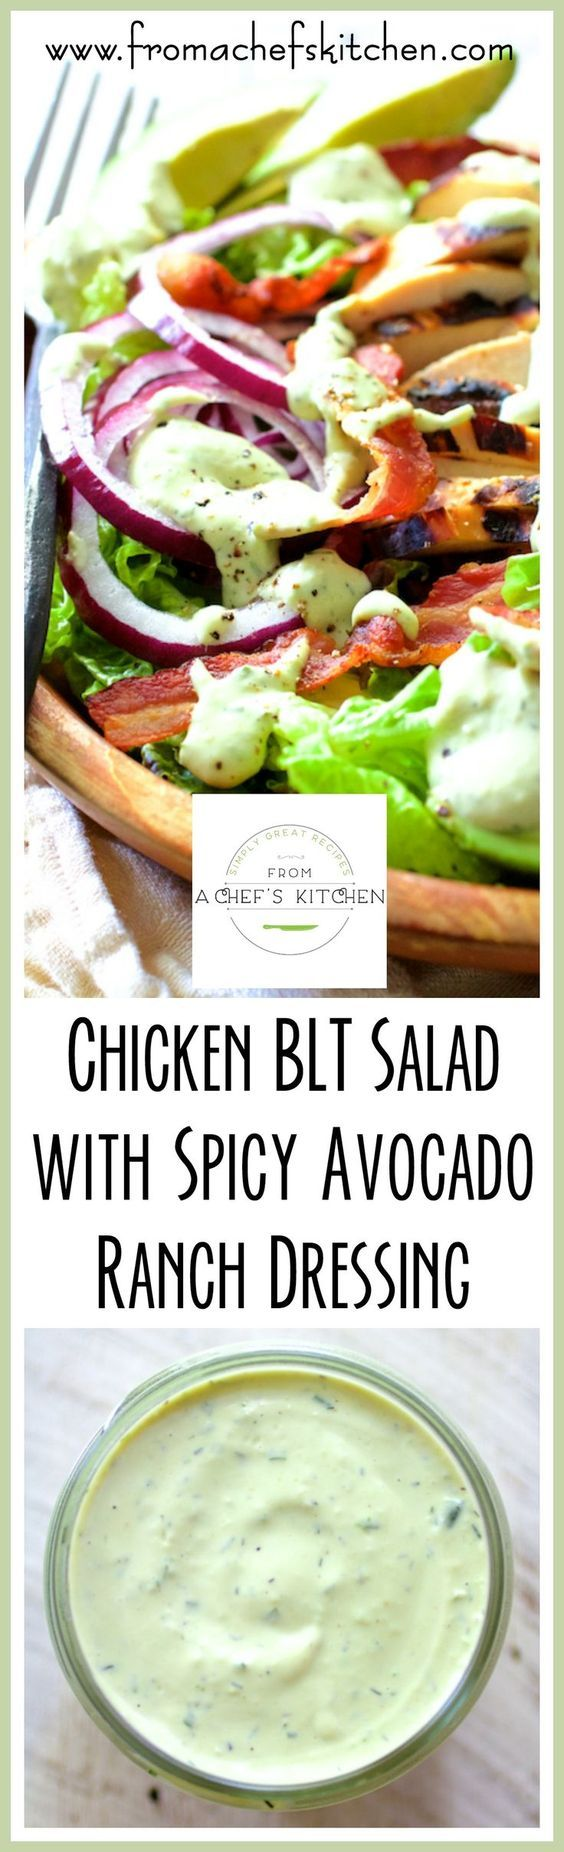 Chicken BLT Salad with Spicy Avocado Ranch Dressing is fresh, cool, crunchy and the perfect way to use up grilled chicken! via @chefcarolb